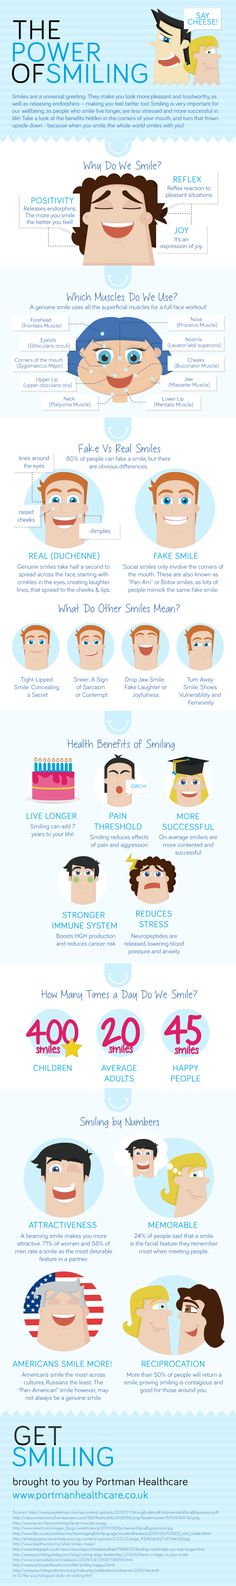 "The Power of Smiling #Infographic - ""Smiling — the purest expression of happiness — has the ability to regulate our blood pressure, strengthen our immune system, lower the risk of cancer, increase our life by seven years, and provide inner peace and satisfaction. The good news is that it doesn't cost a thing."""